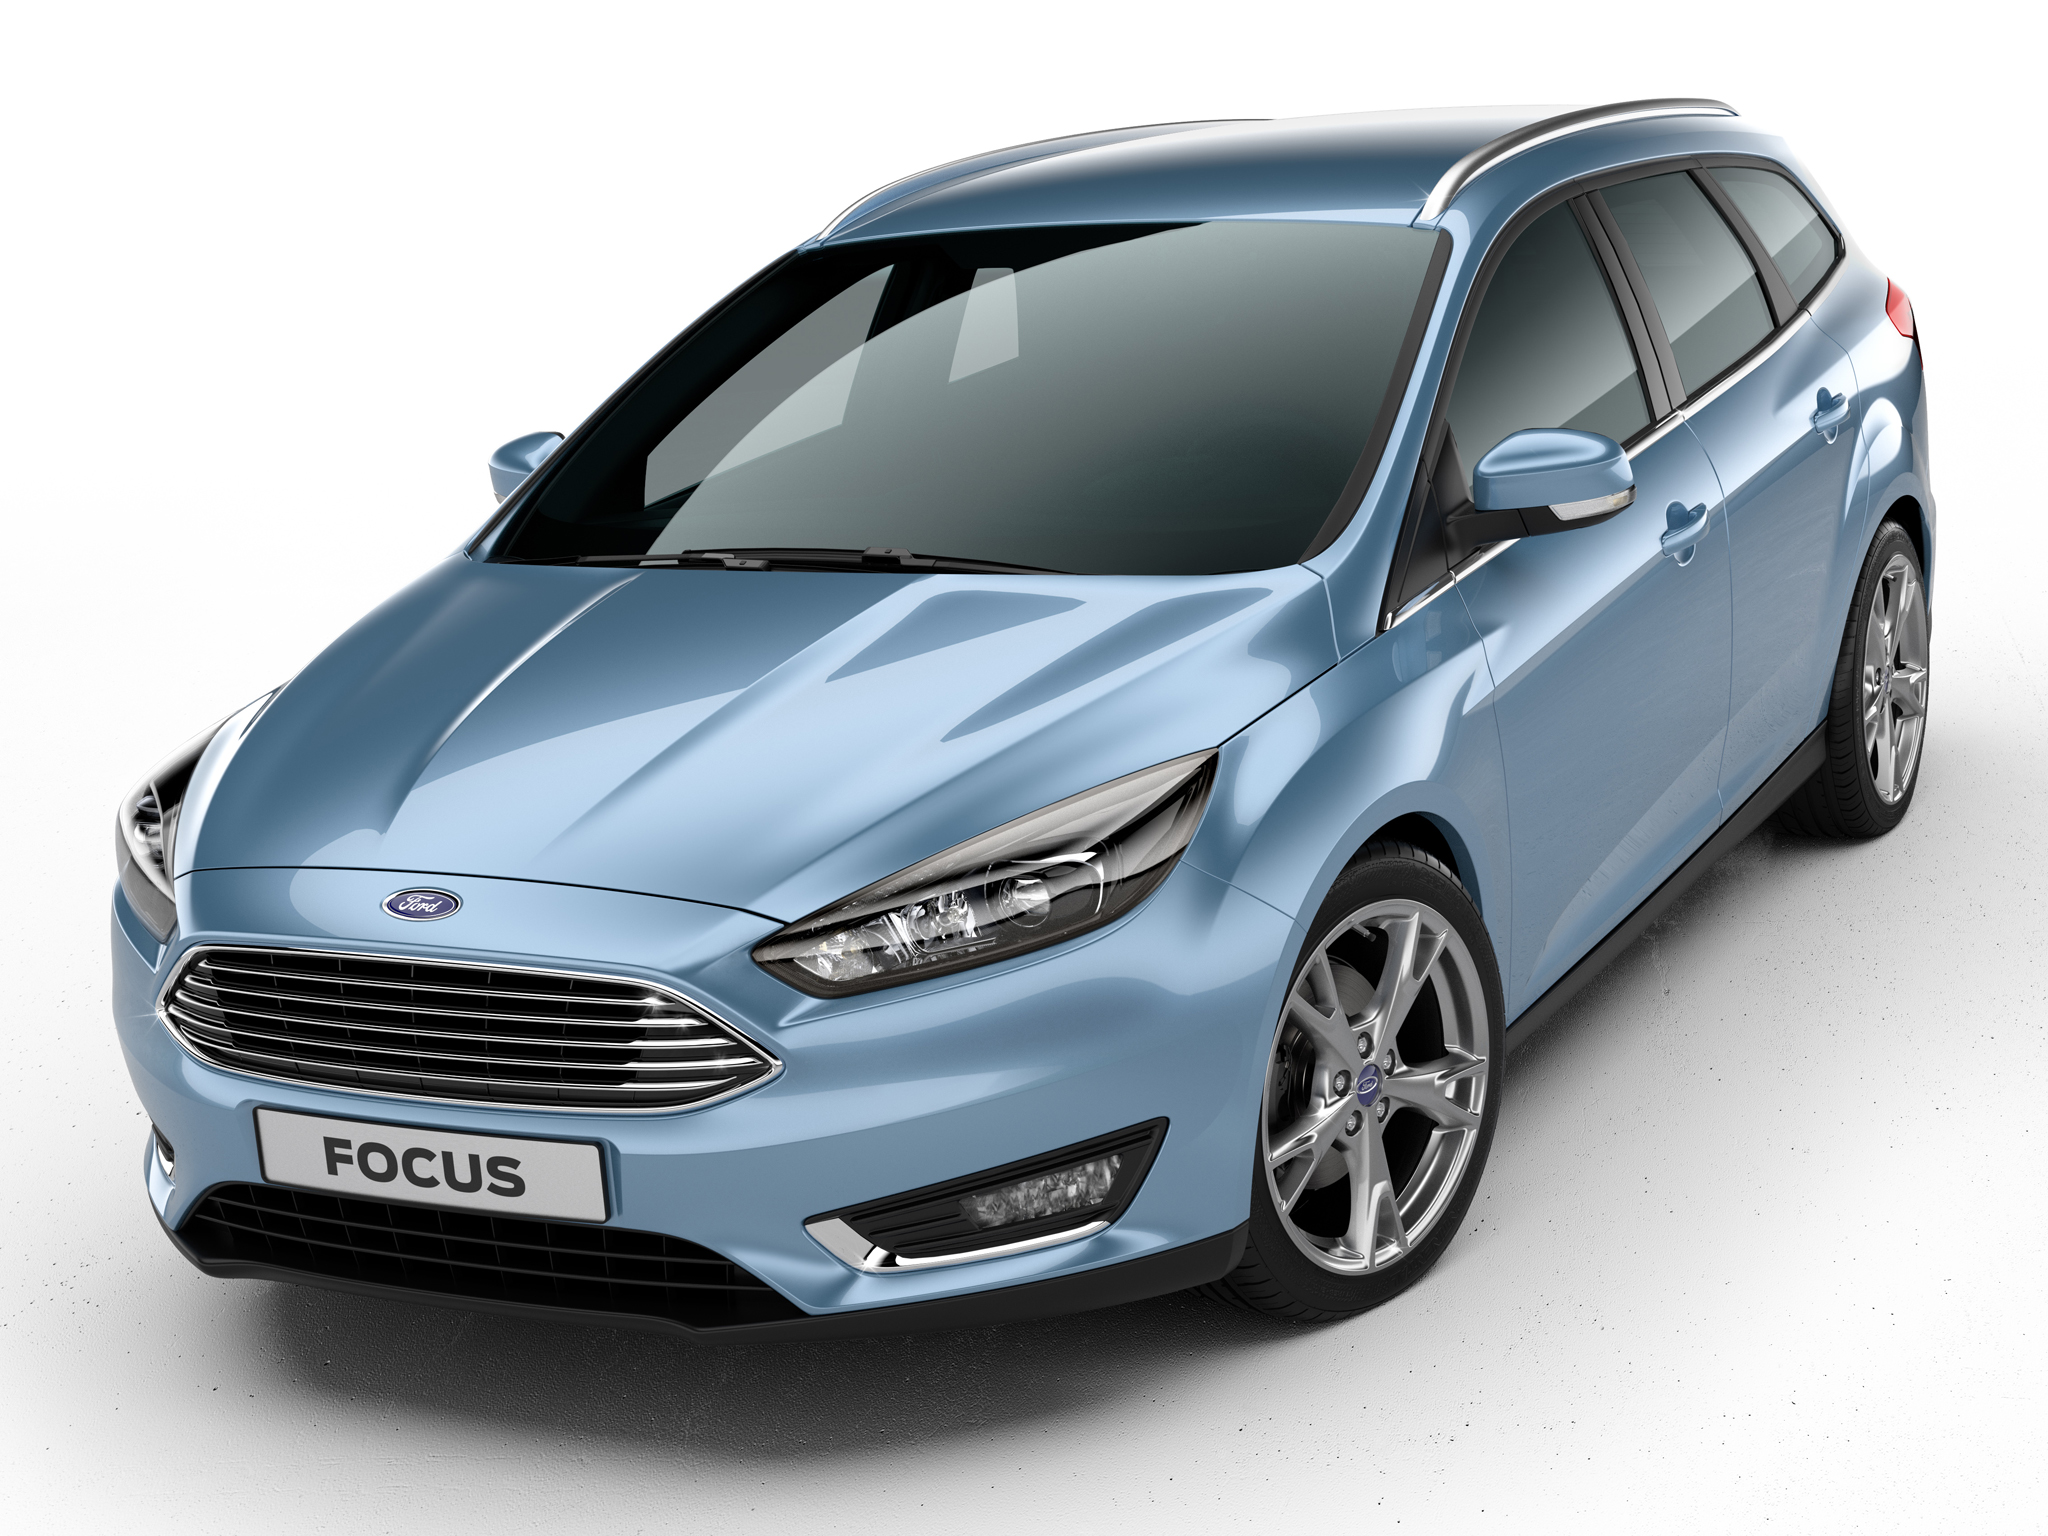 2014 ford focus estate touring leaked photos show new. Black Bedroom Furniture Sets. Home Design Ideas